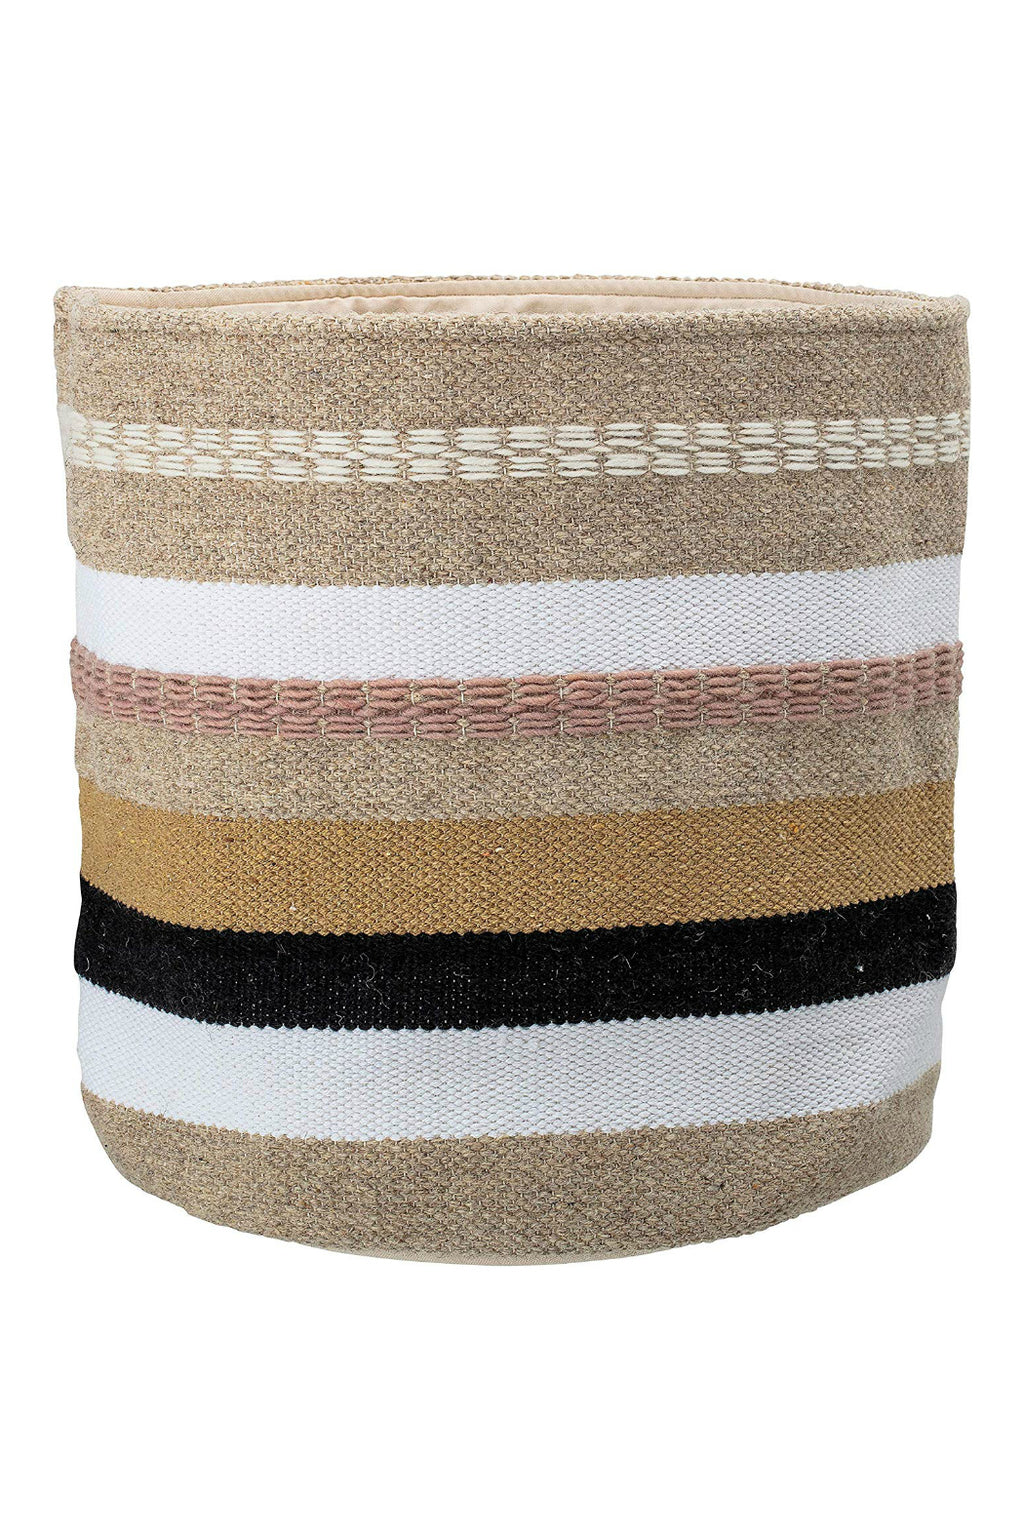 EcoVibe Style - Bloomingville Woven Wool & Cotton Basket w/ Stripes